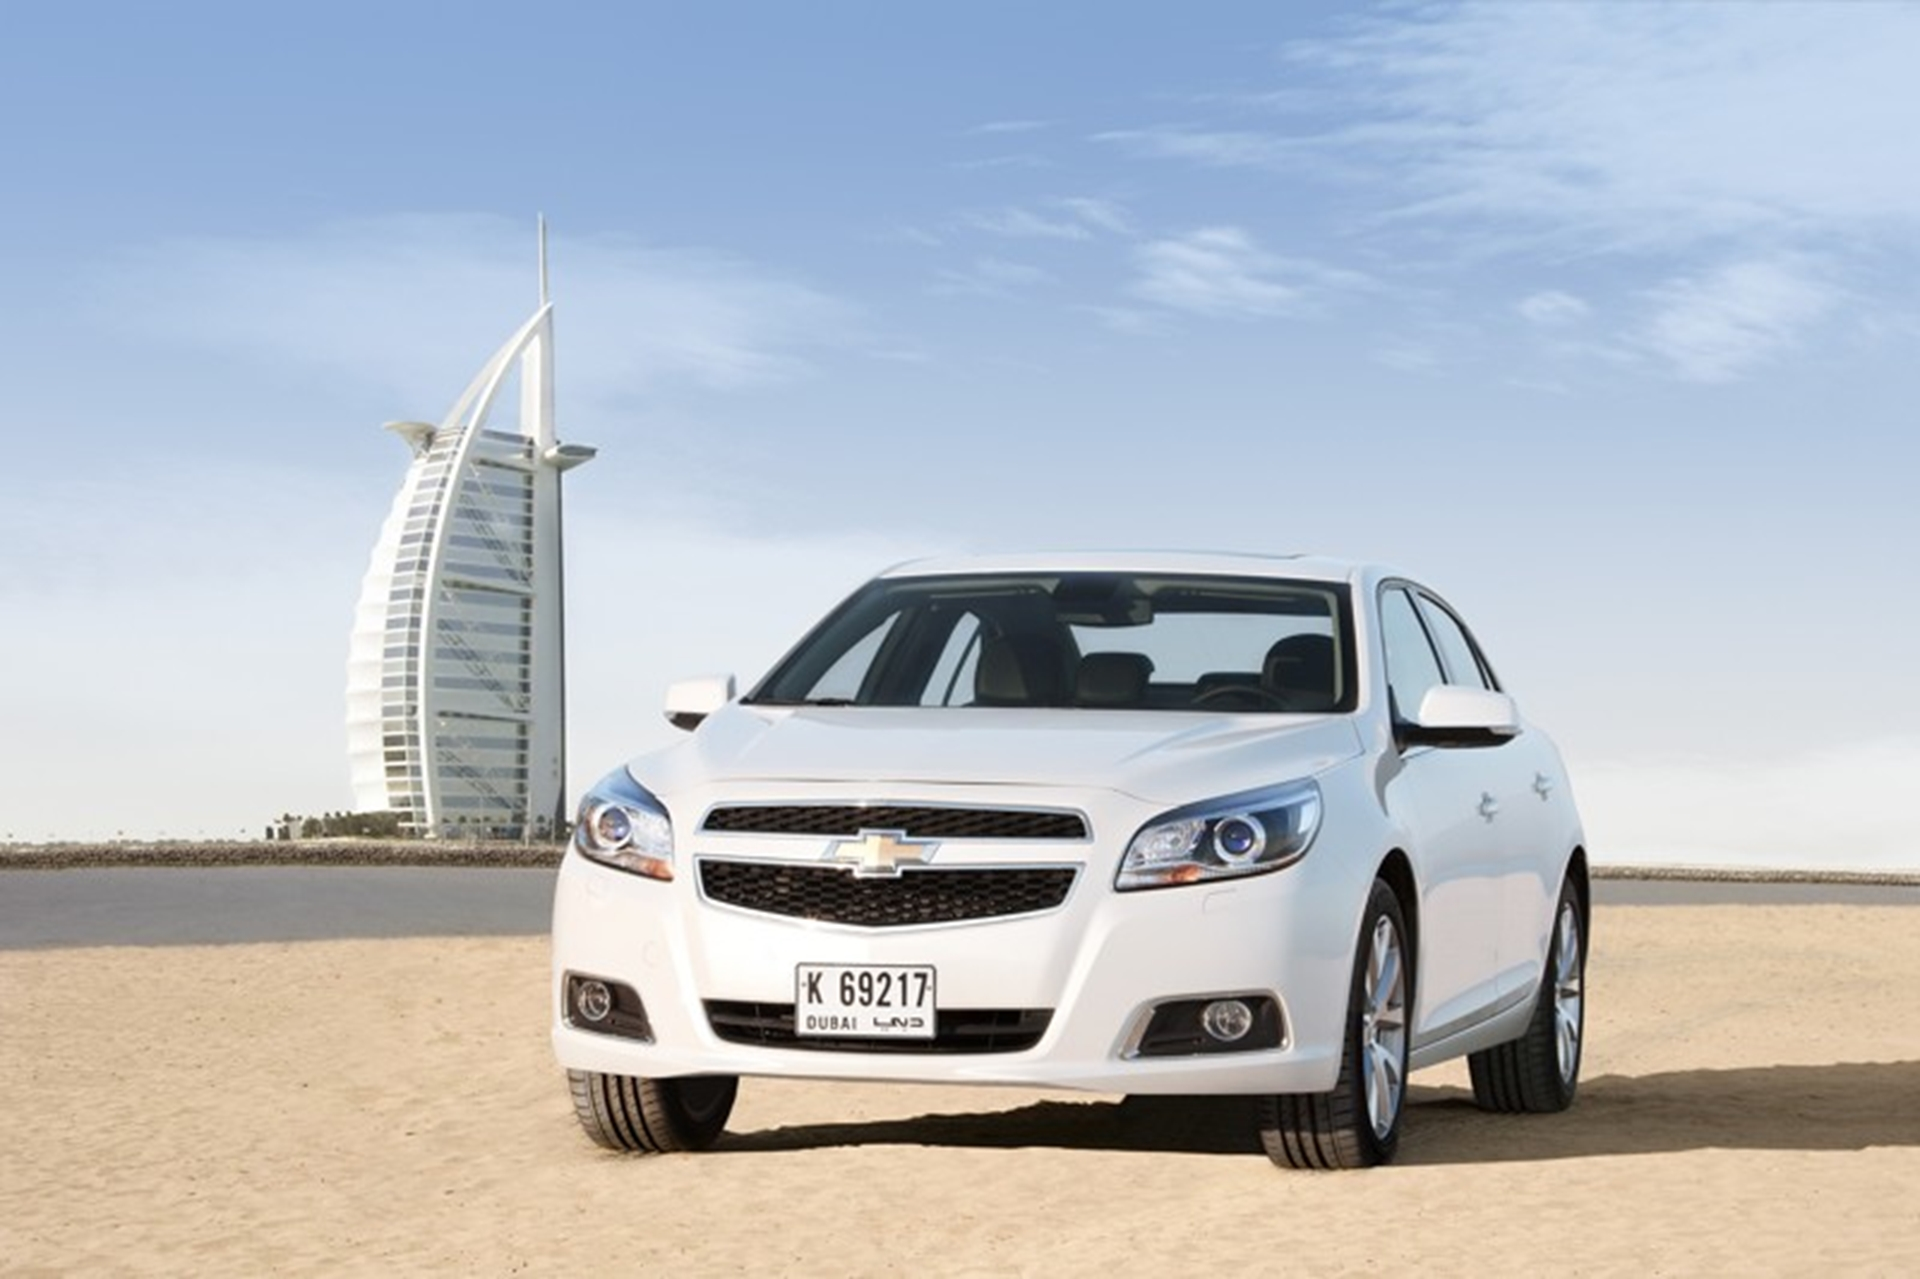 2013 Chevrolet Malibu United Arab Emirates